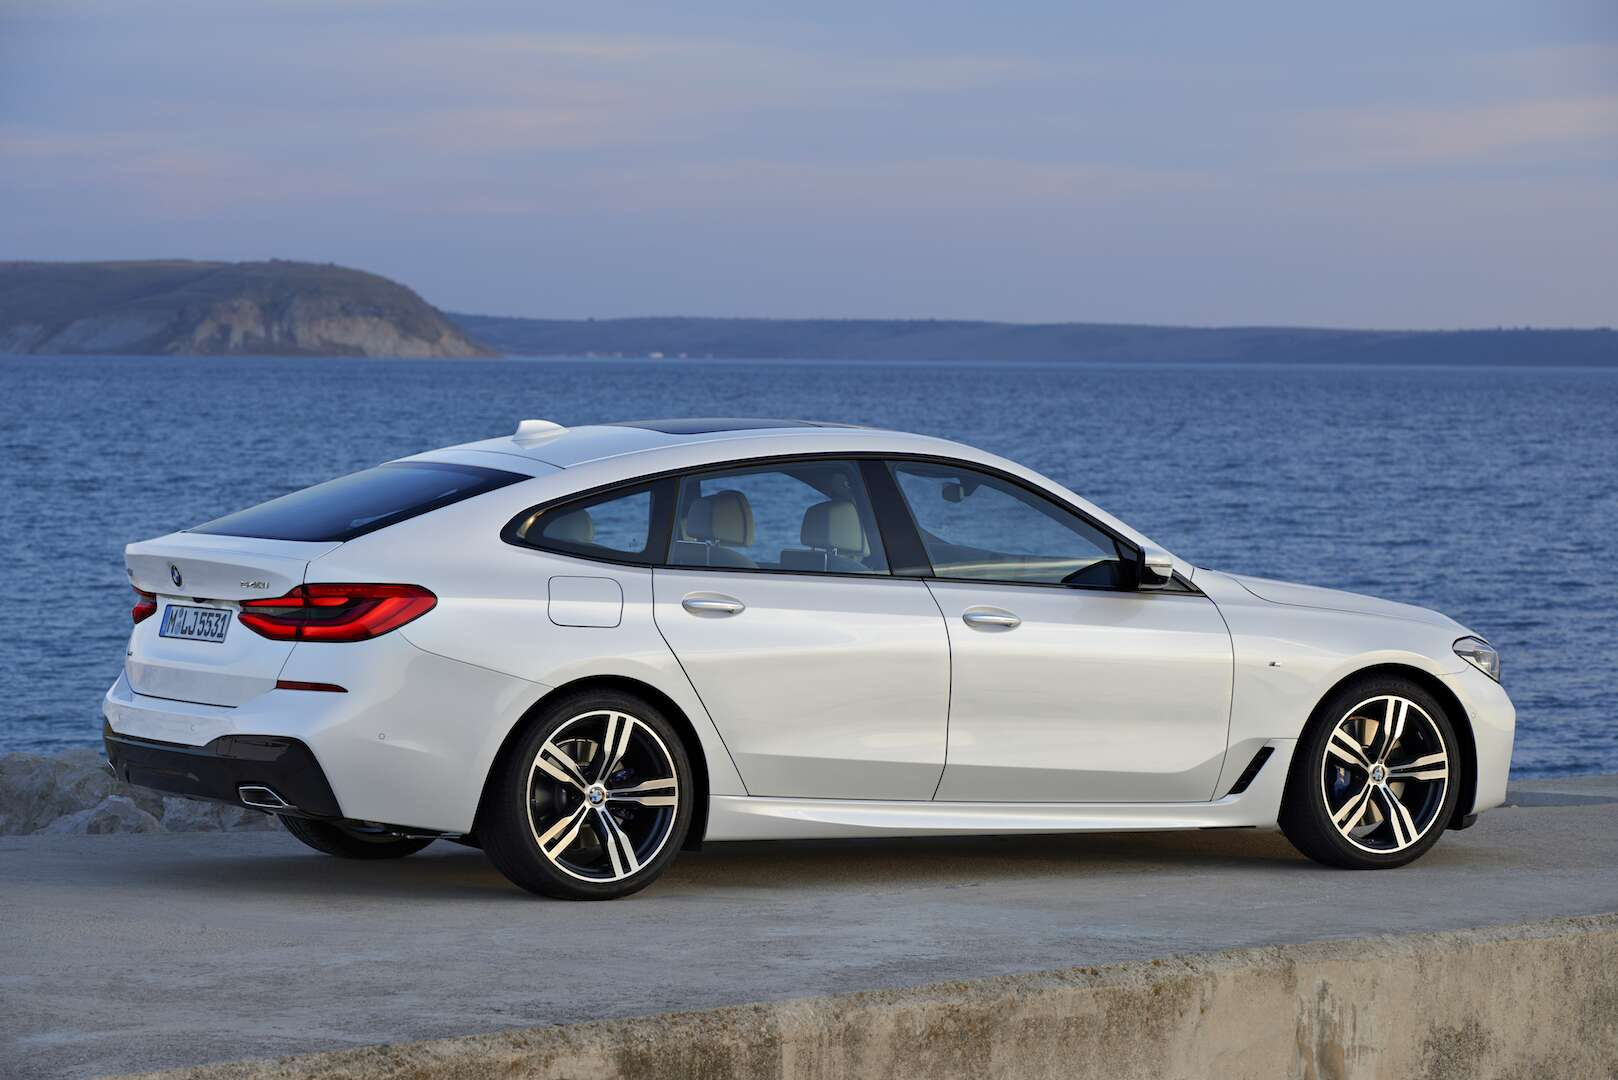 The 2018 BMW 640i XDrive Gran Turismo Still No Beauty But Hauls